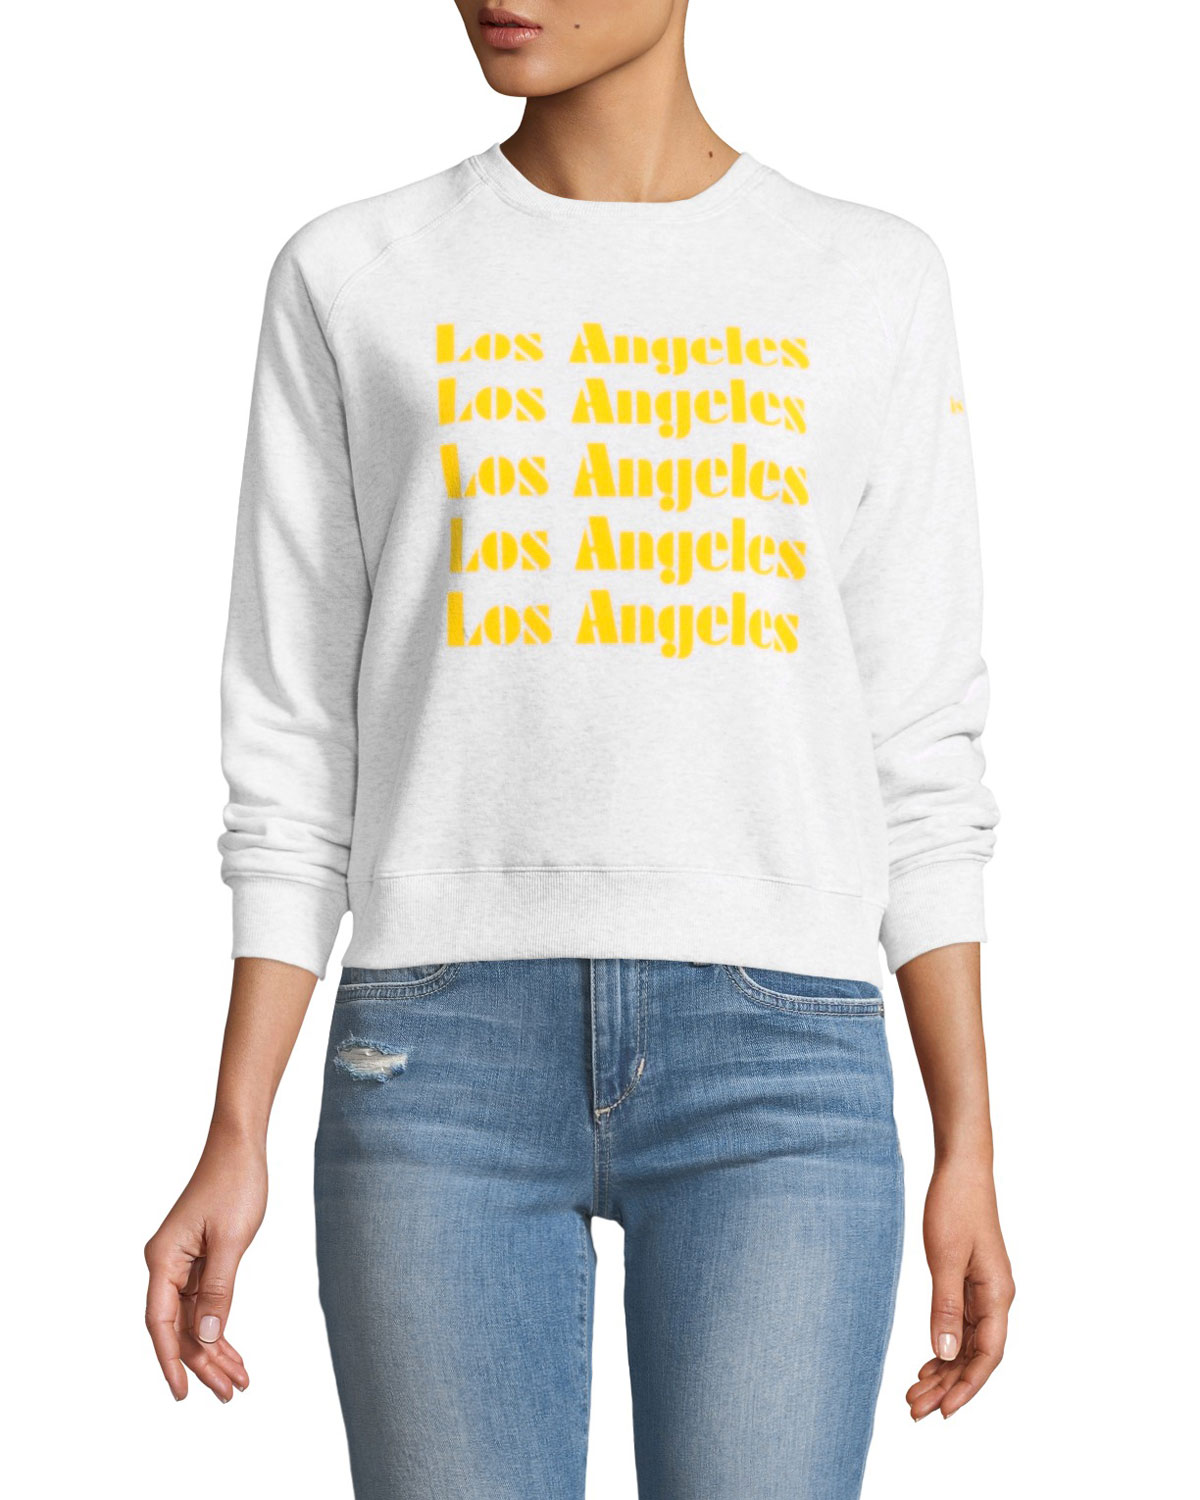 Los Angeles Cropped Graphic Sweatshirt